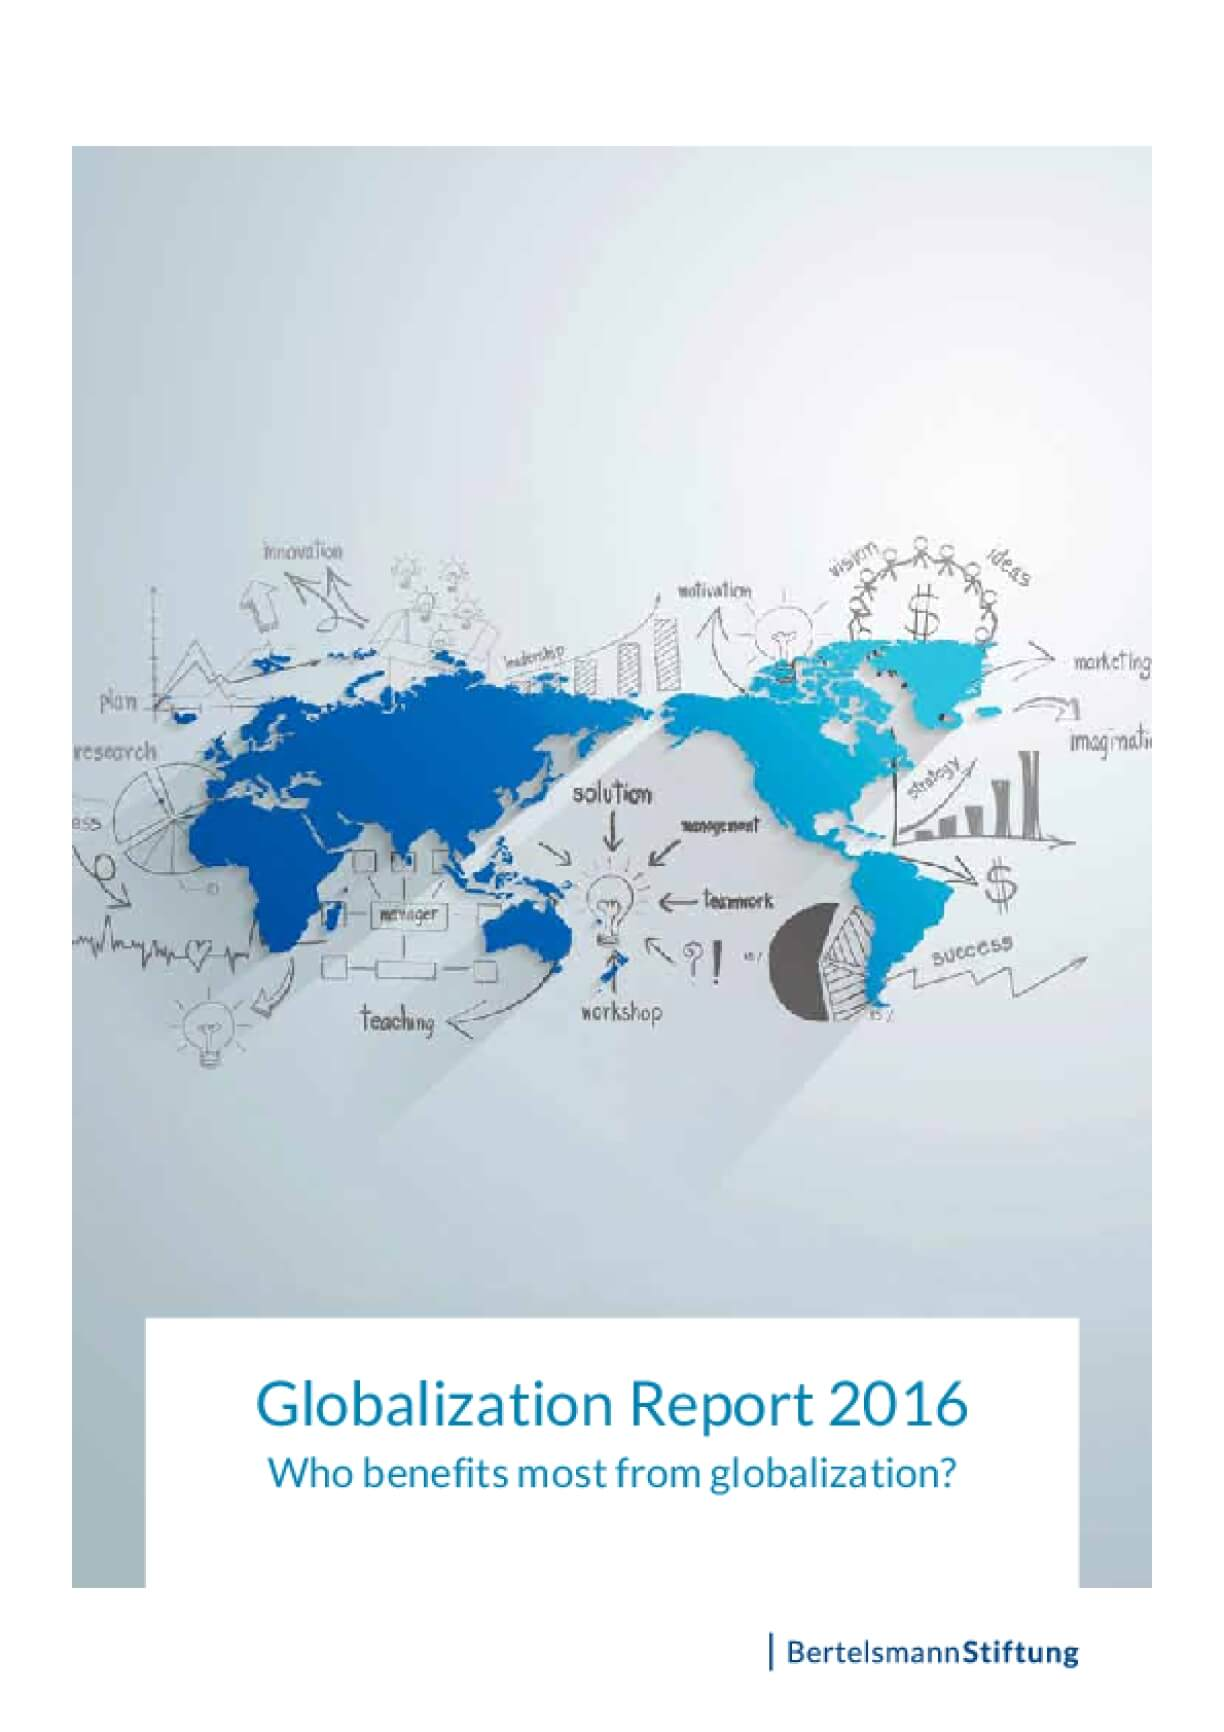 Globalization Report 2016: Who Benefits Most from Globalization?